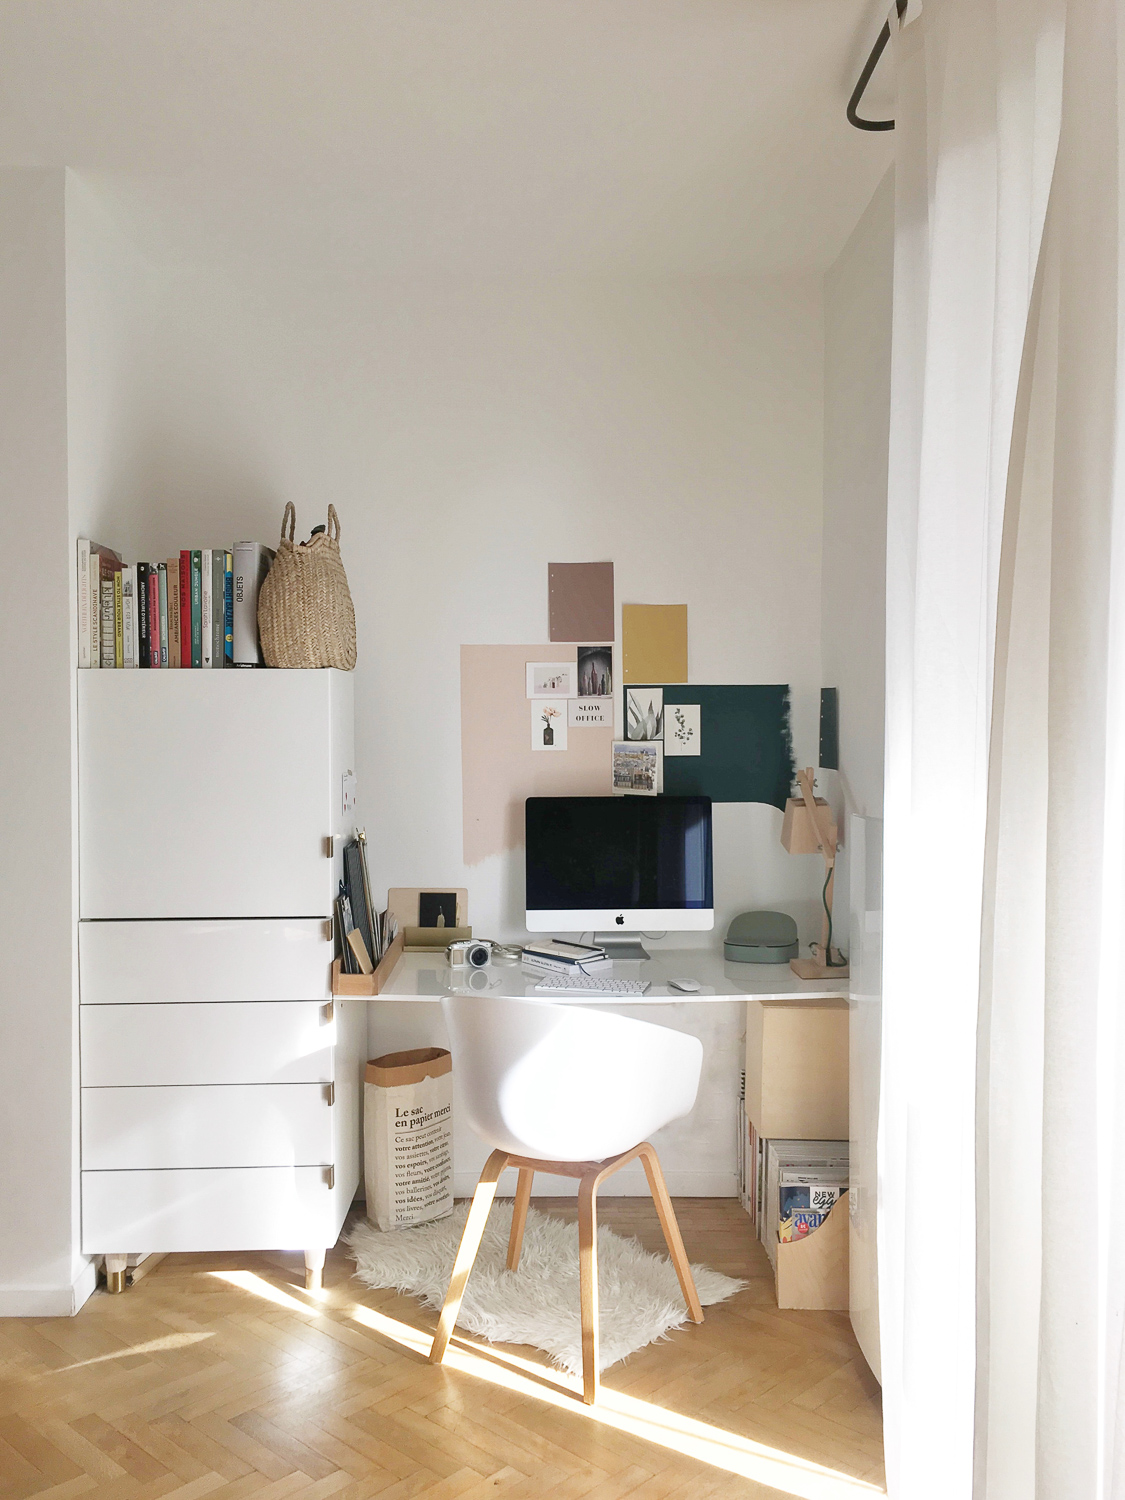 ilaria fatone - my workspace at home - before makeover